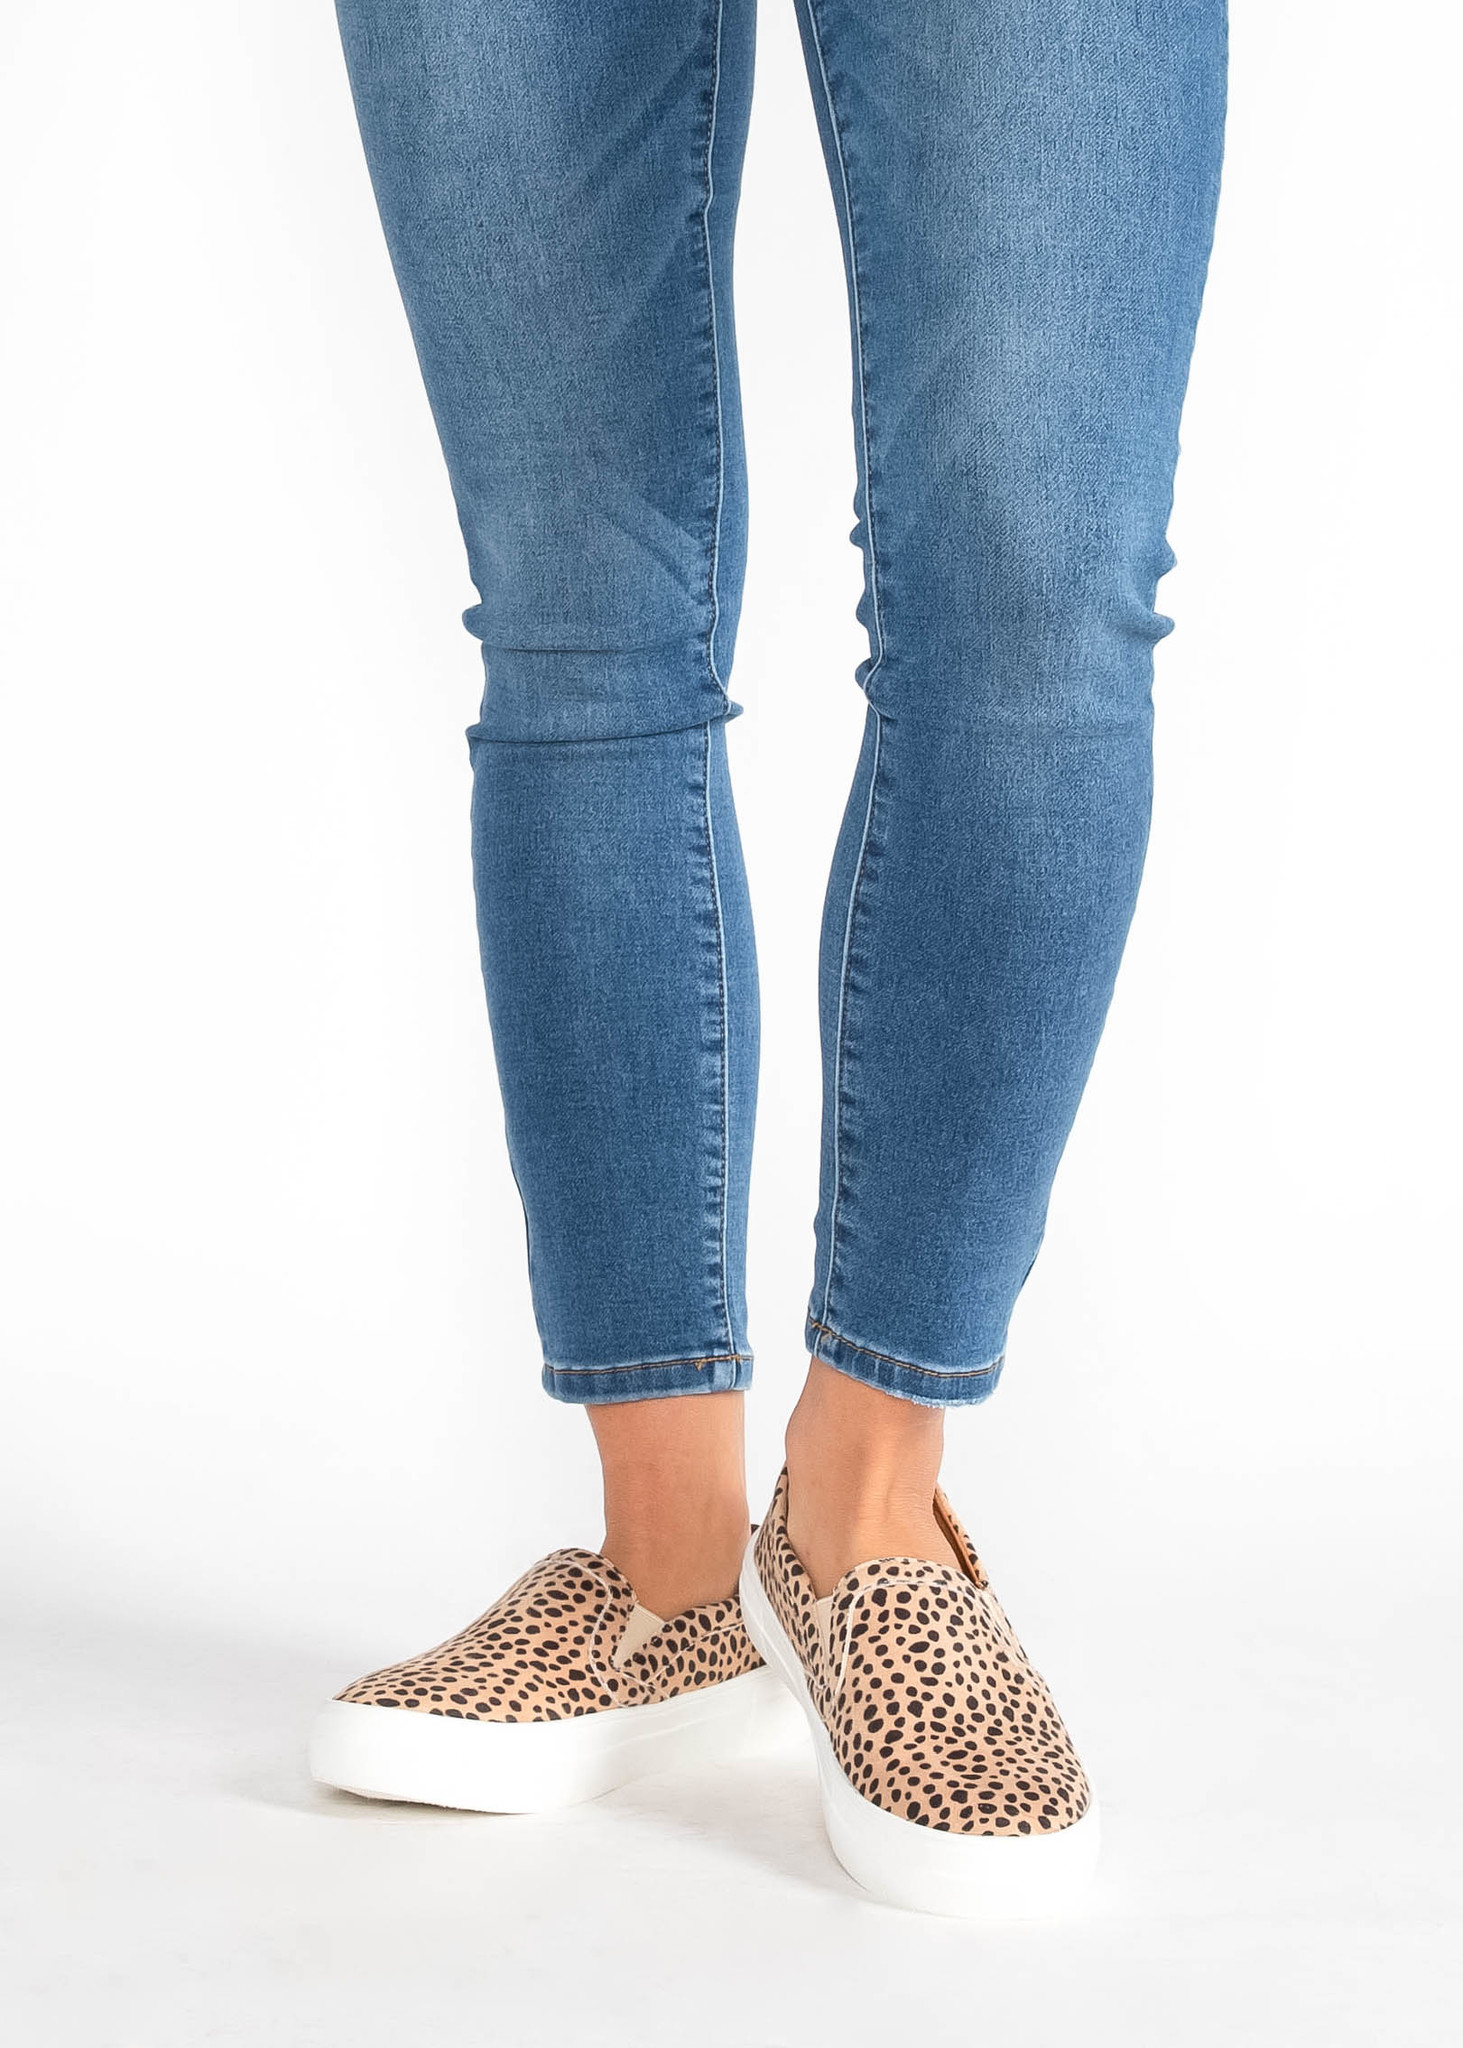 JUMP AROUND LEOPARD SNEAKERS